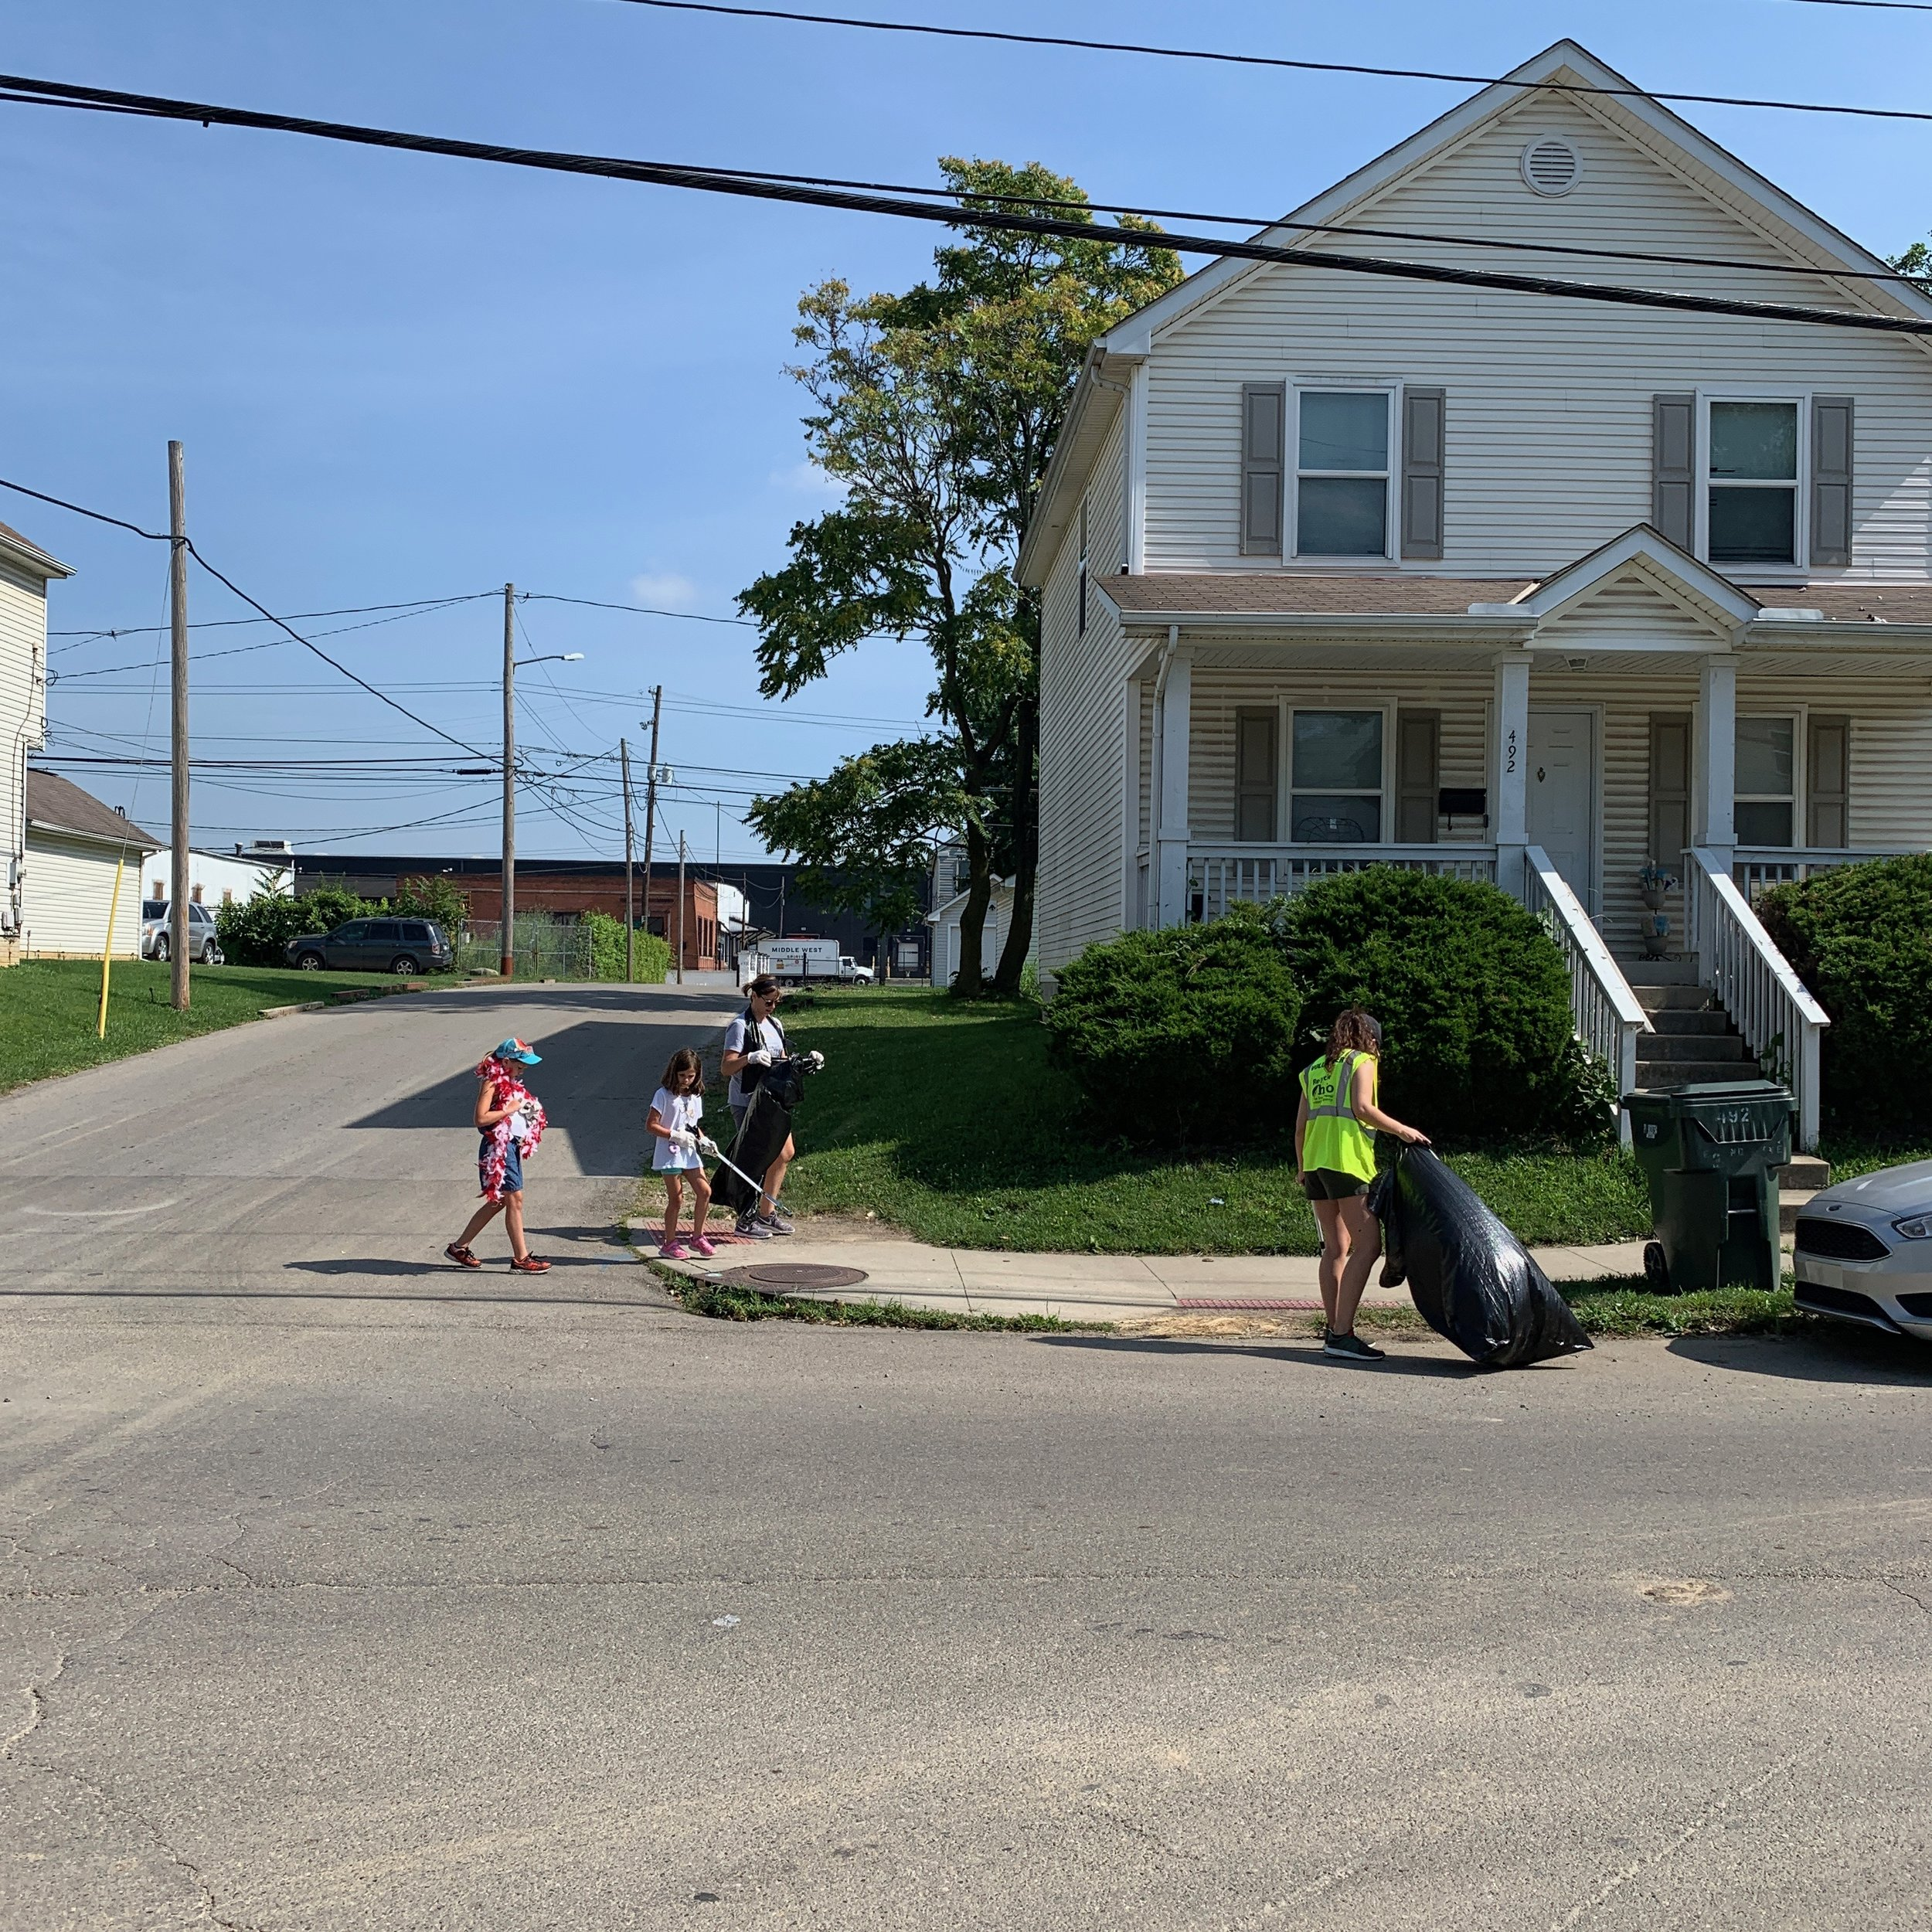 2019-07-02_Litter-CleanUp_00003.jpeg